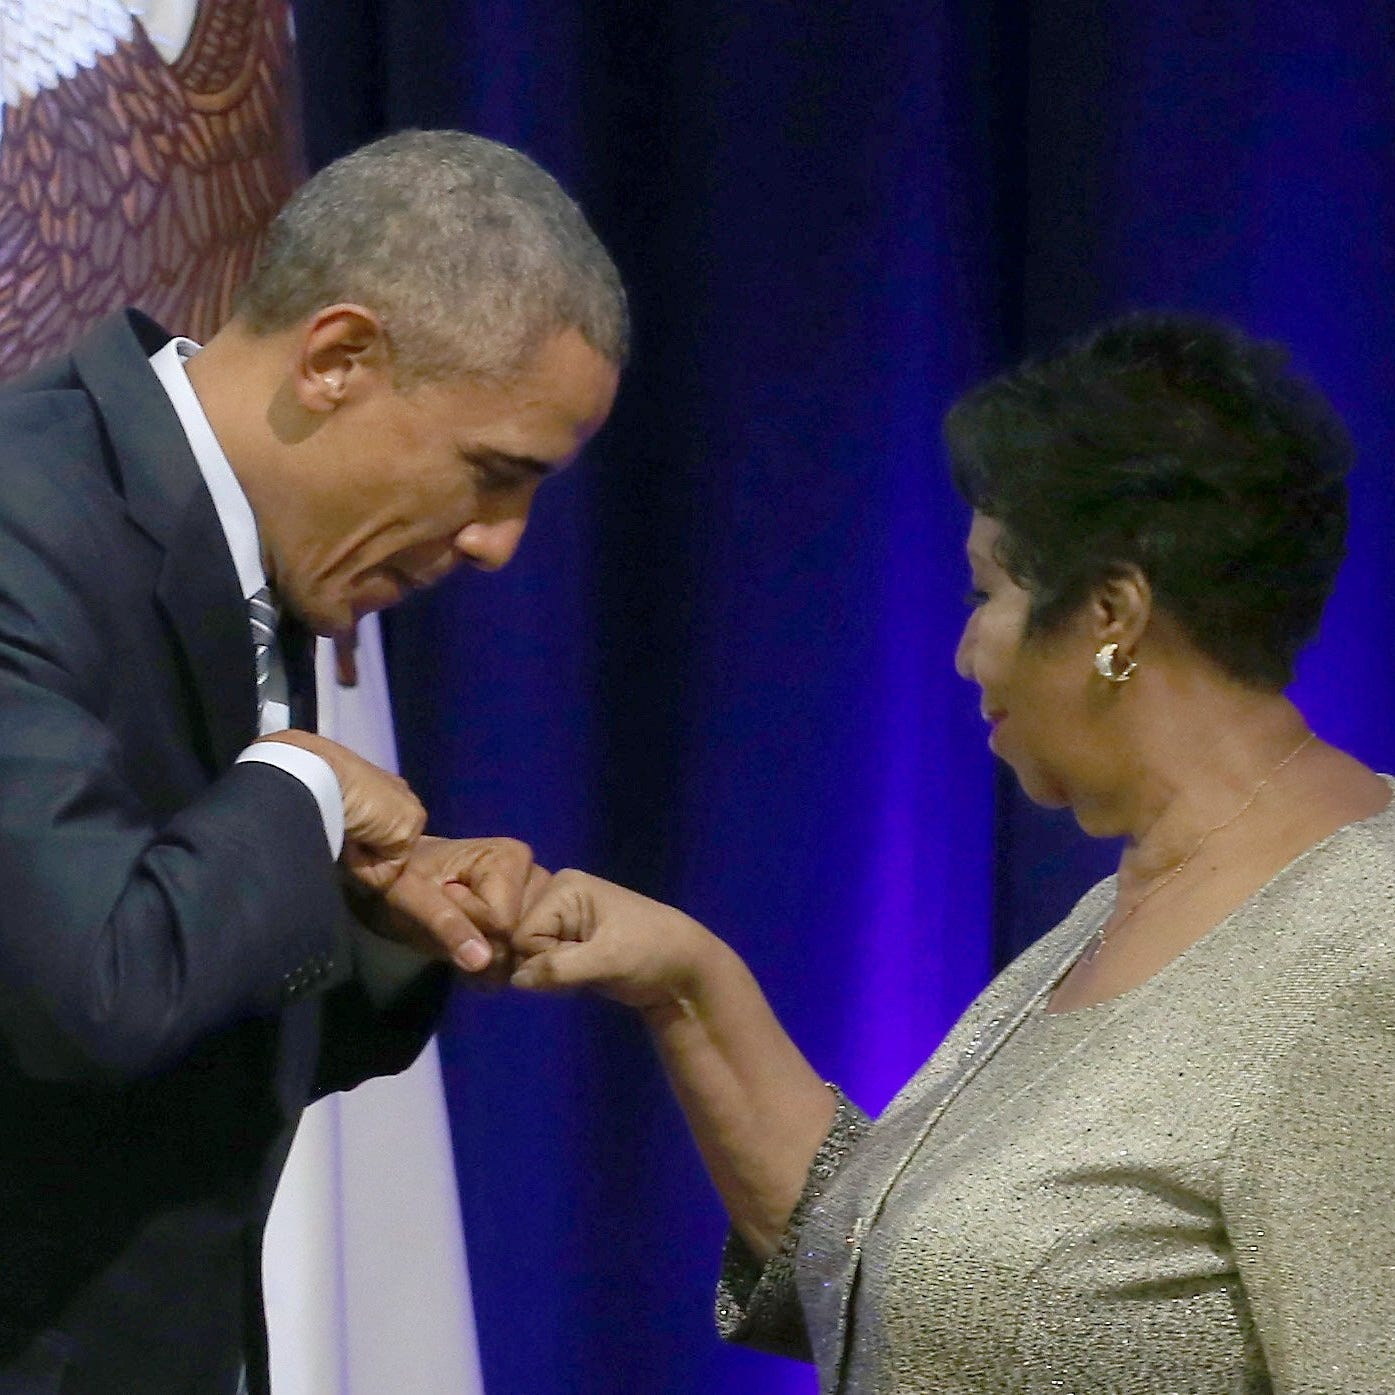 Barack Obama shares heartfelt message to Aretha Franklin